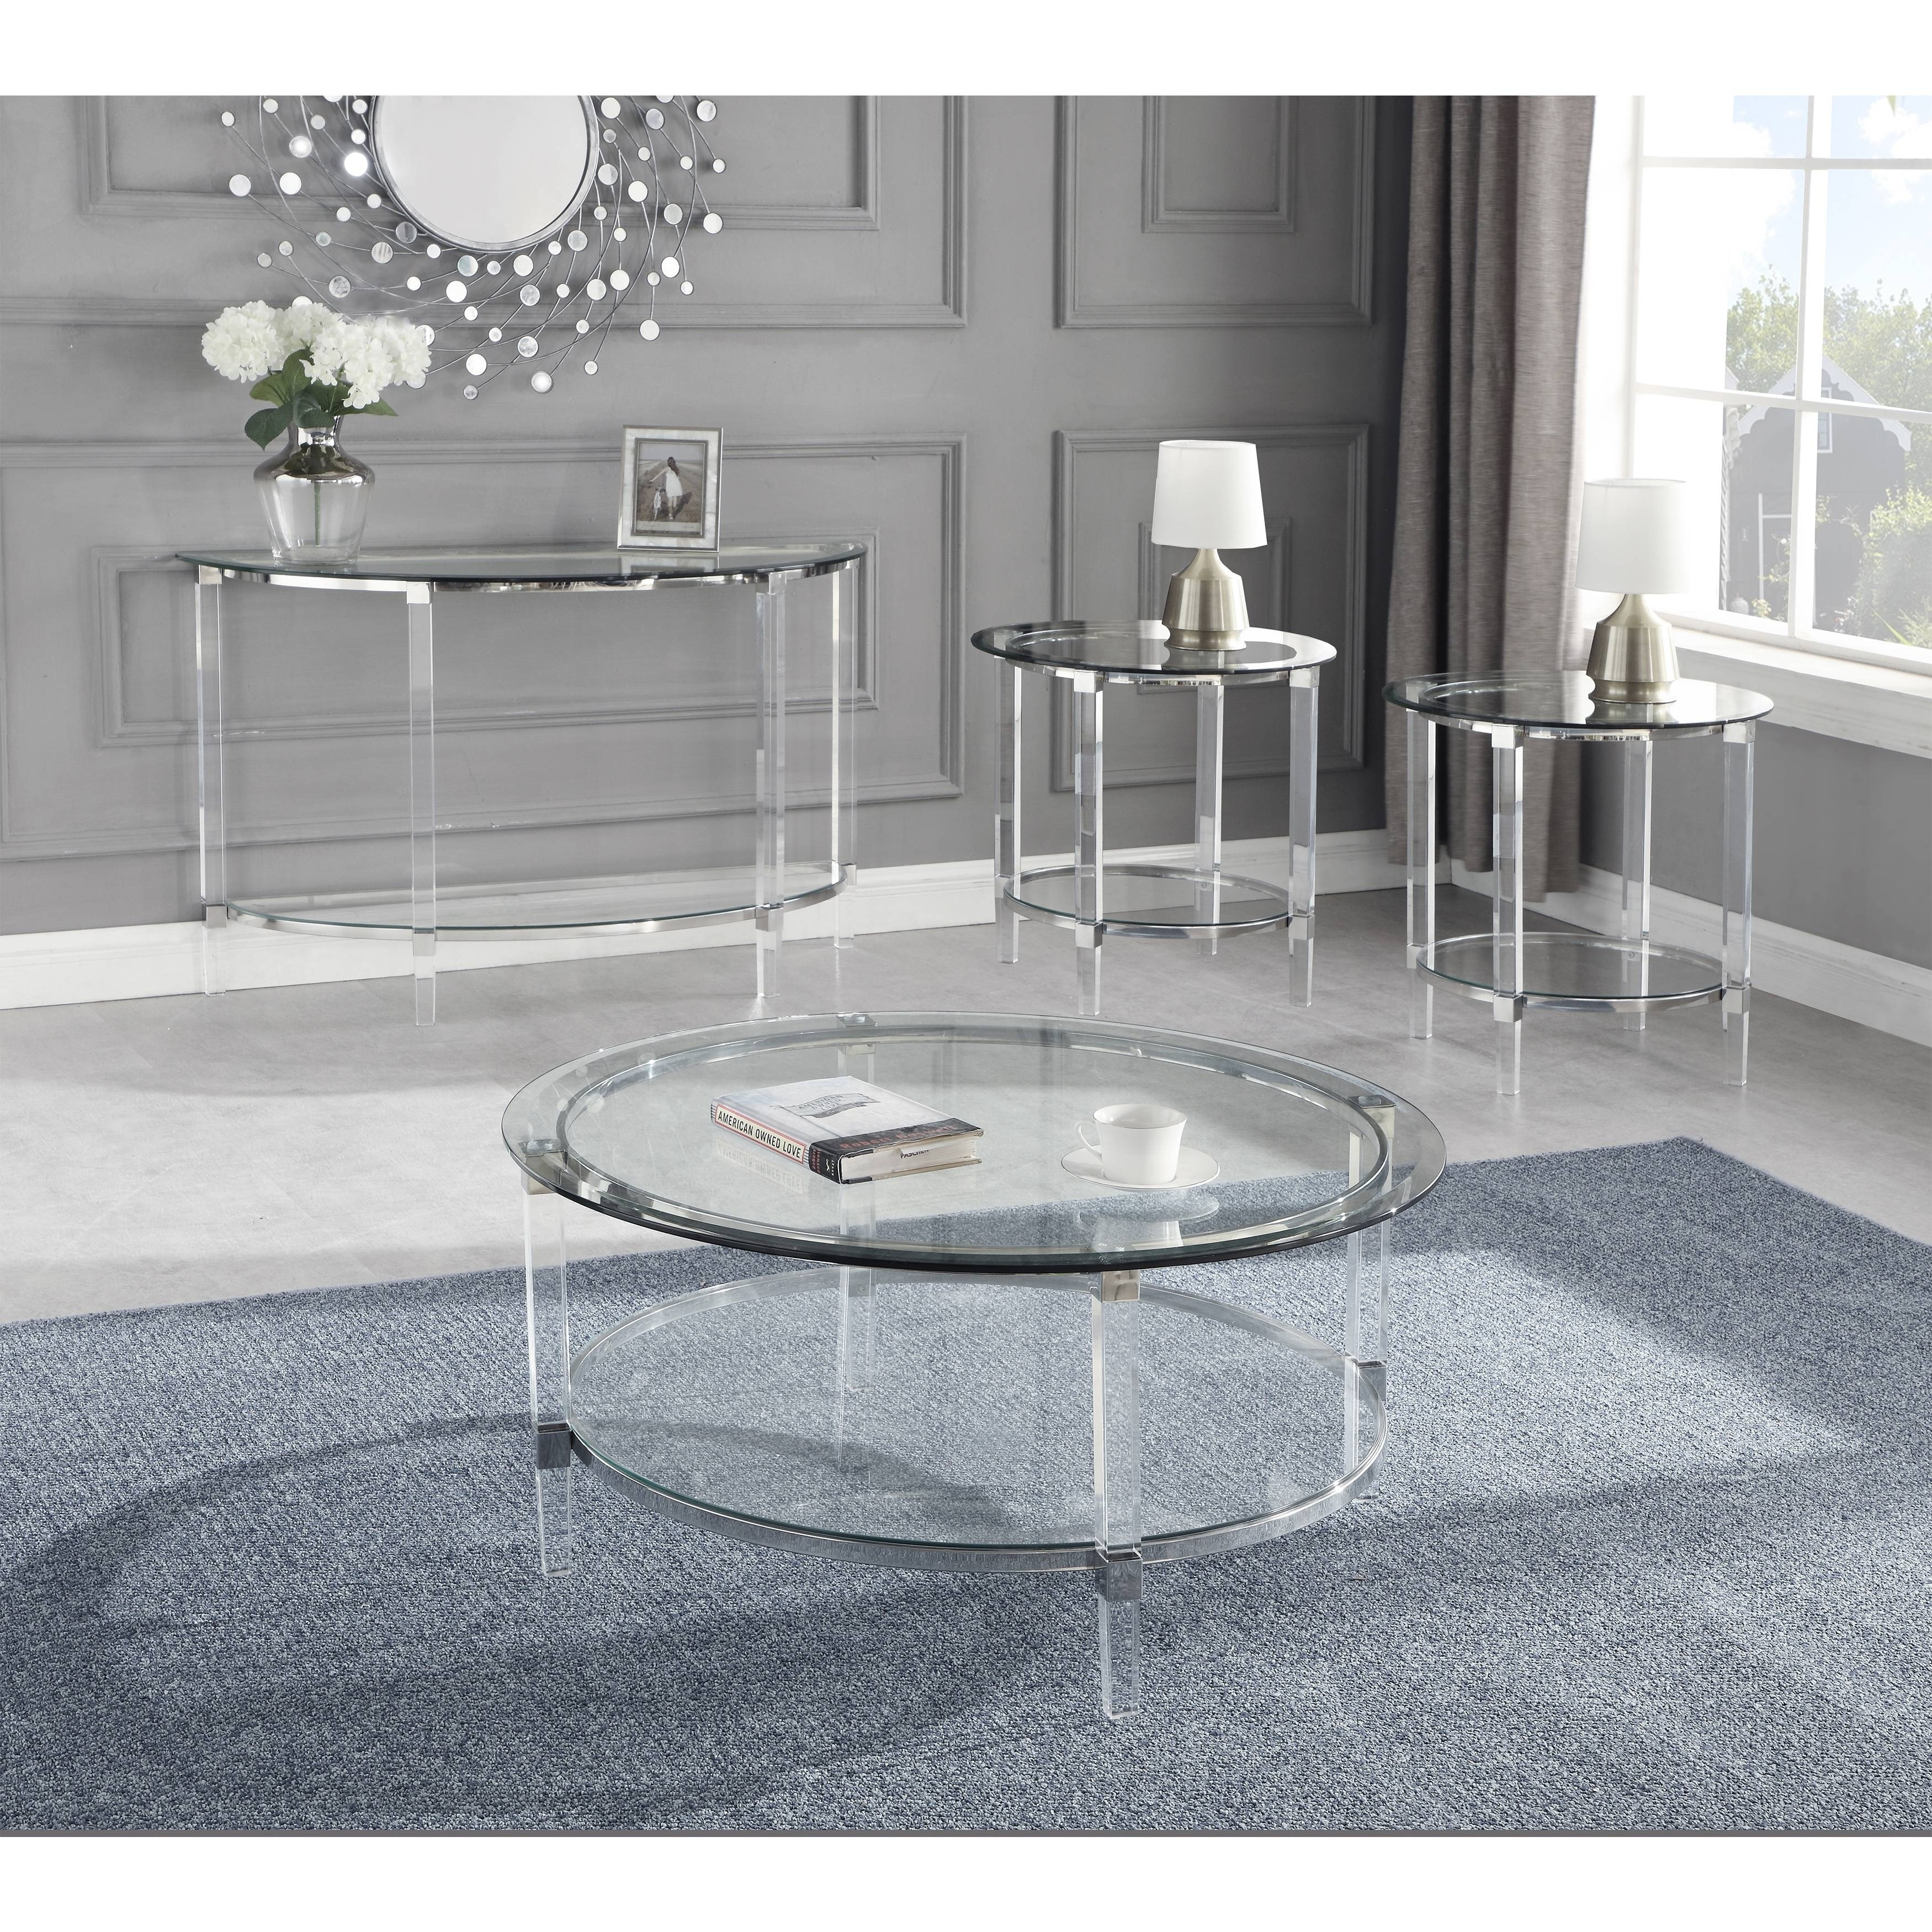 best quality furniture 4 piece coffee table set special glass top acrylic legs coffee table 2 end tables console table